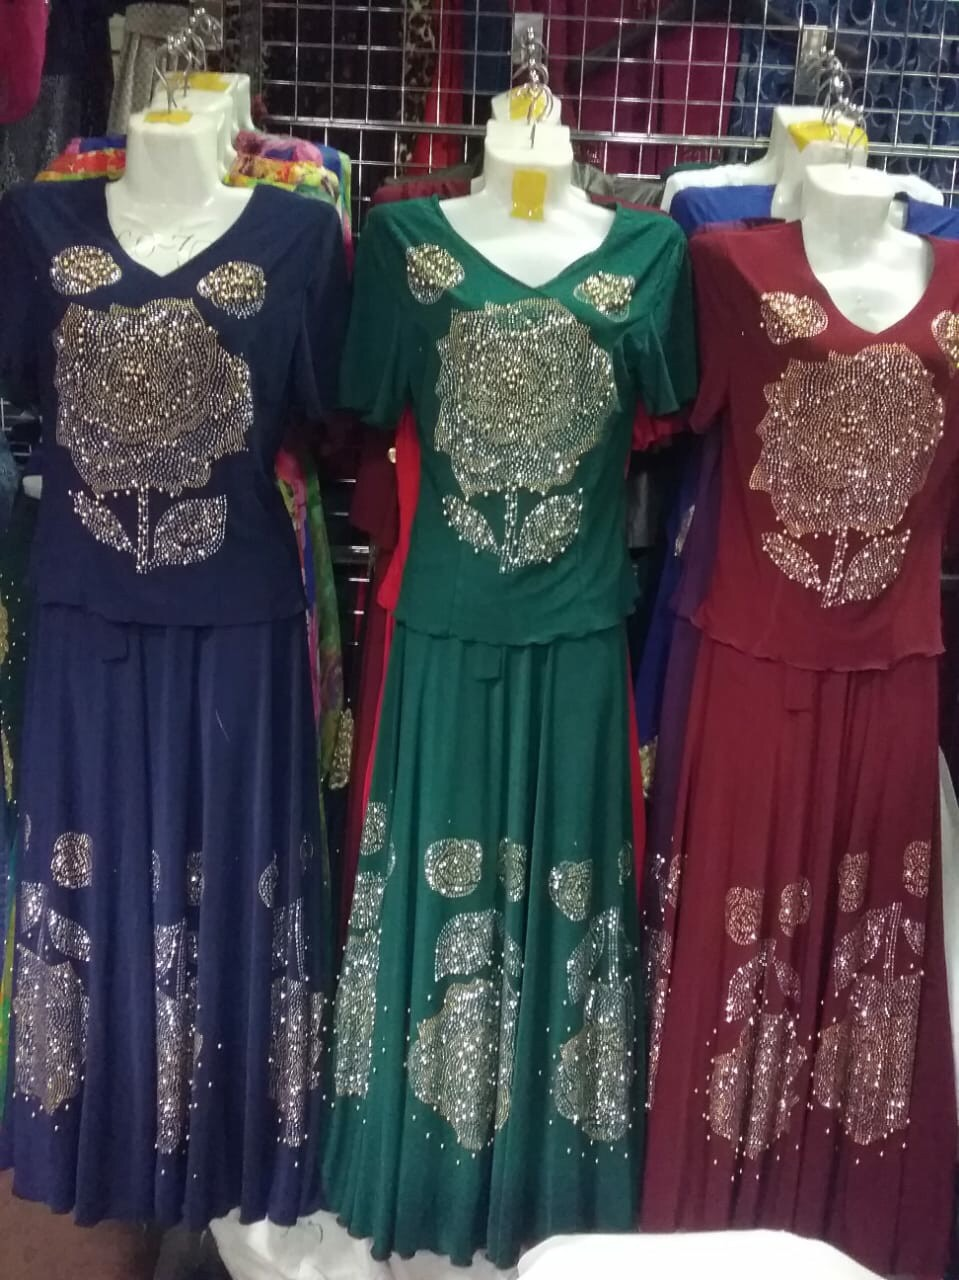 Hello, I am looking for a supplier for sewing gypsy costumes and scarves in bulk, orders will be every week.